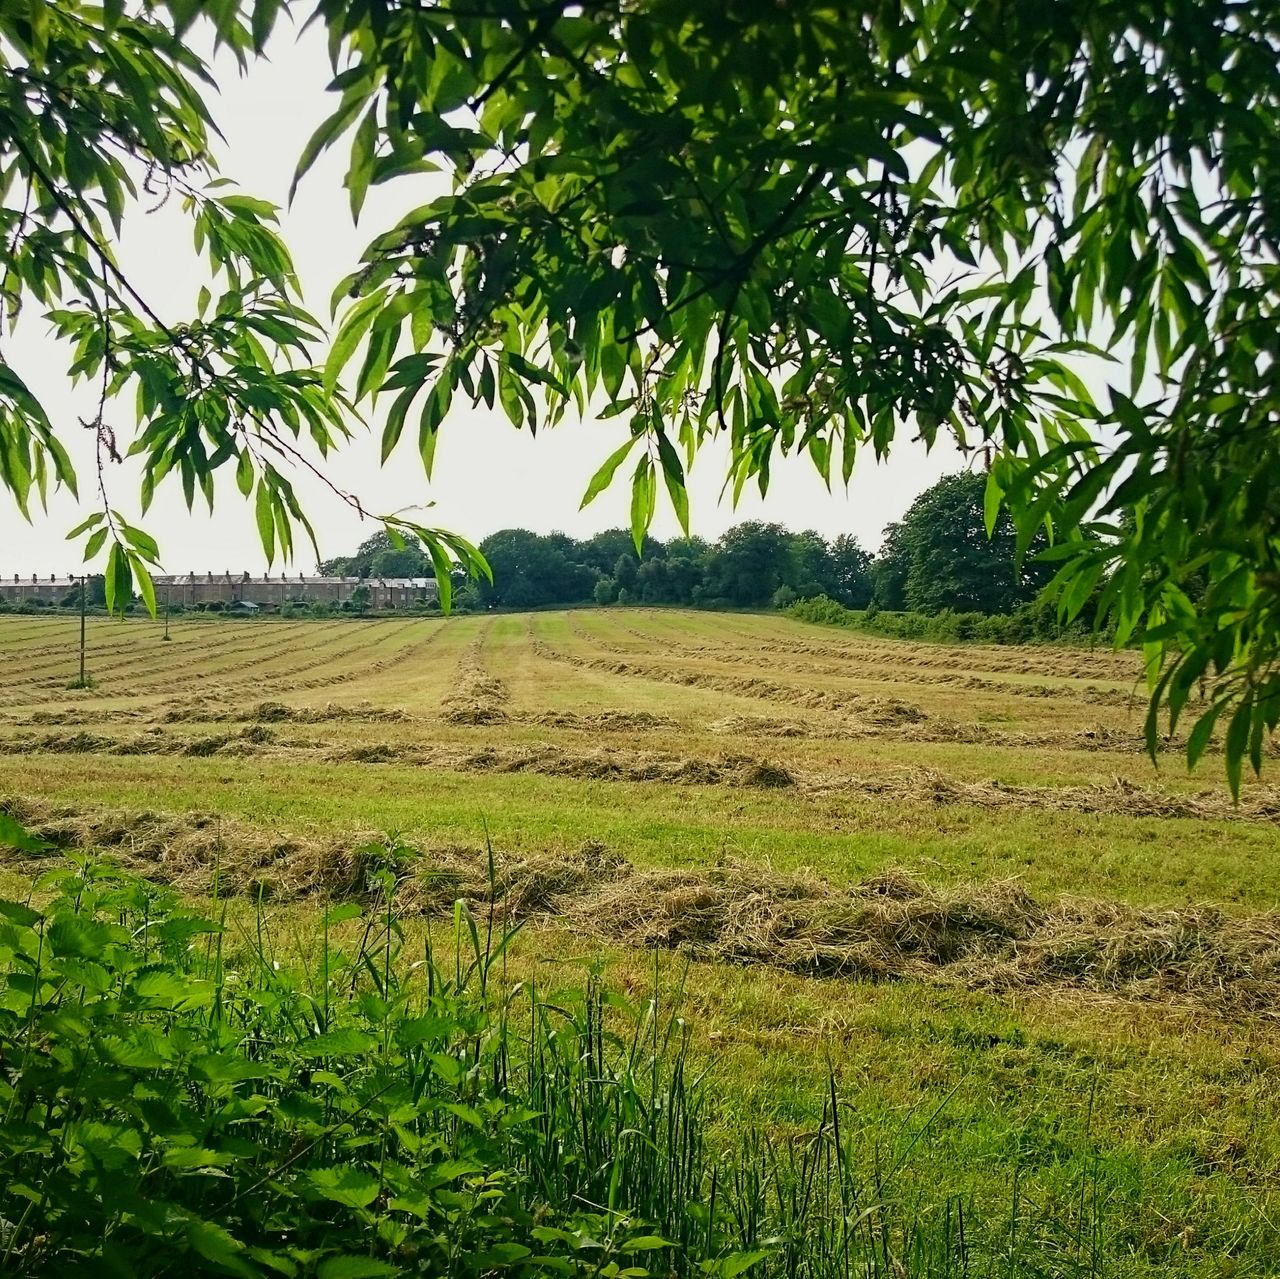 Taking Photos Eeyem Nature Lover Beauty In Nature EeYem Best Shots Taking Photos Farming Summertime Haymaking Time Rows Of Things Rows Grassy Grassfield Agriculture Fields Fieldscene From Where I Stand Countryside Rural Scenes Tranquility Landscape Landscapes Landscape_Collection